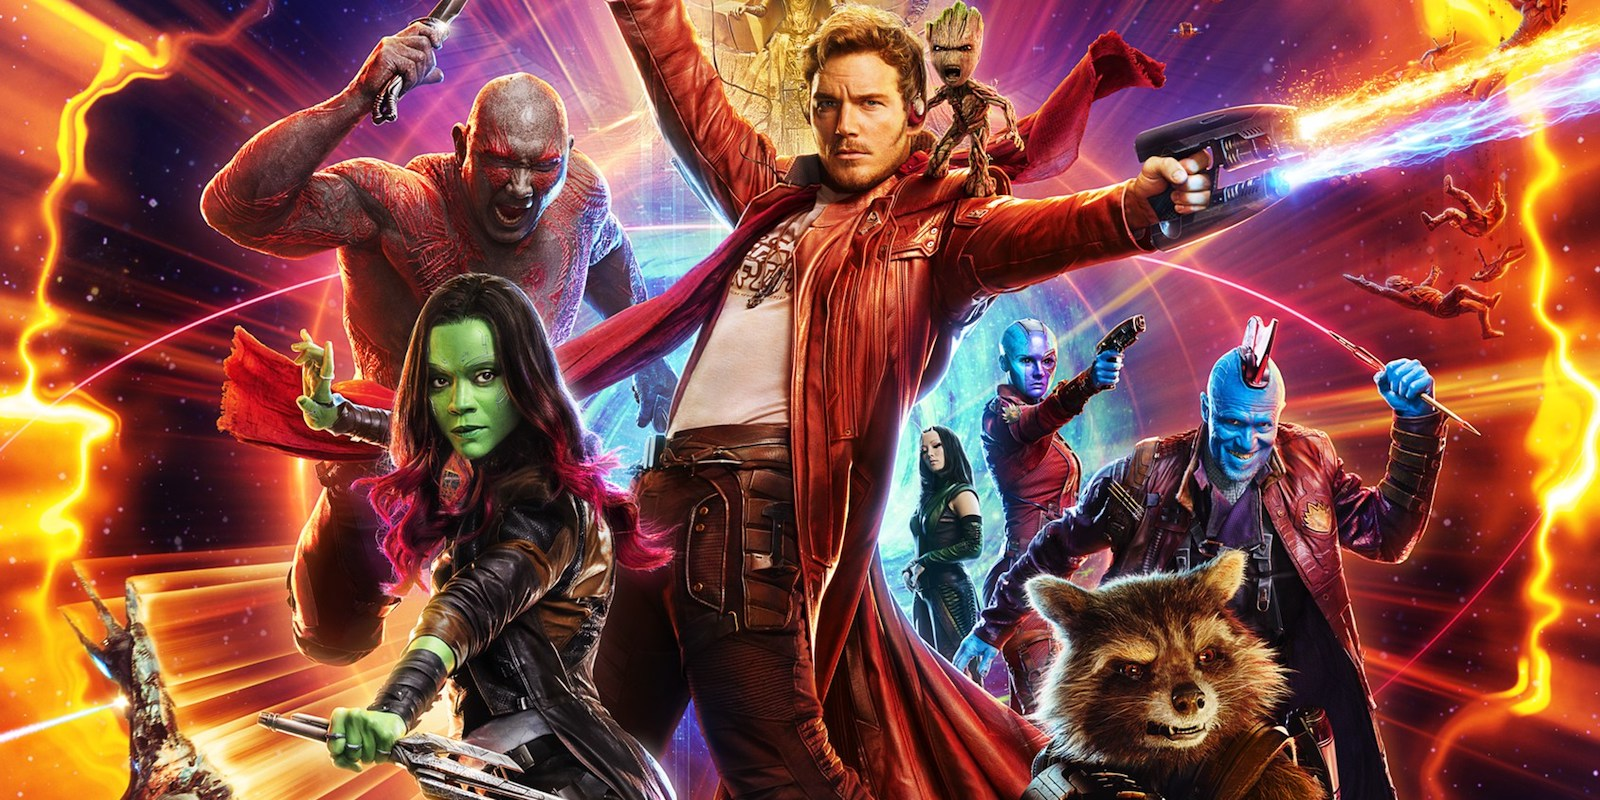 CAB to screen 'Guardians of the Galaxy: Vol. 2'